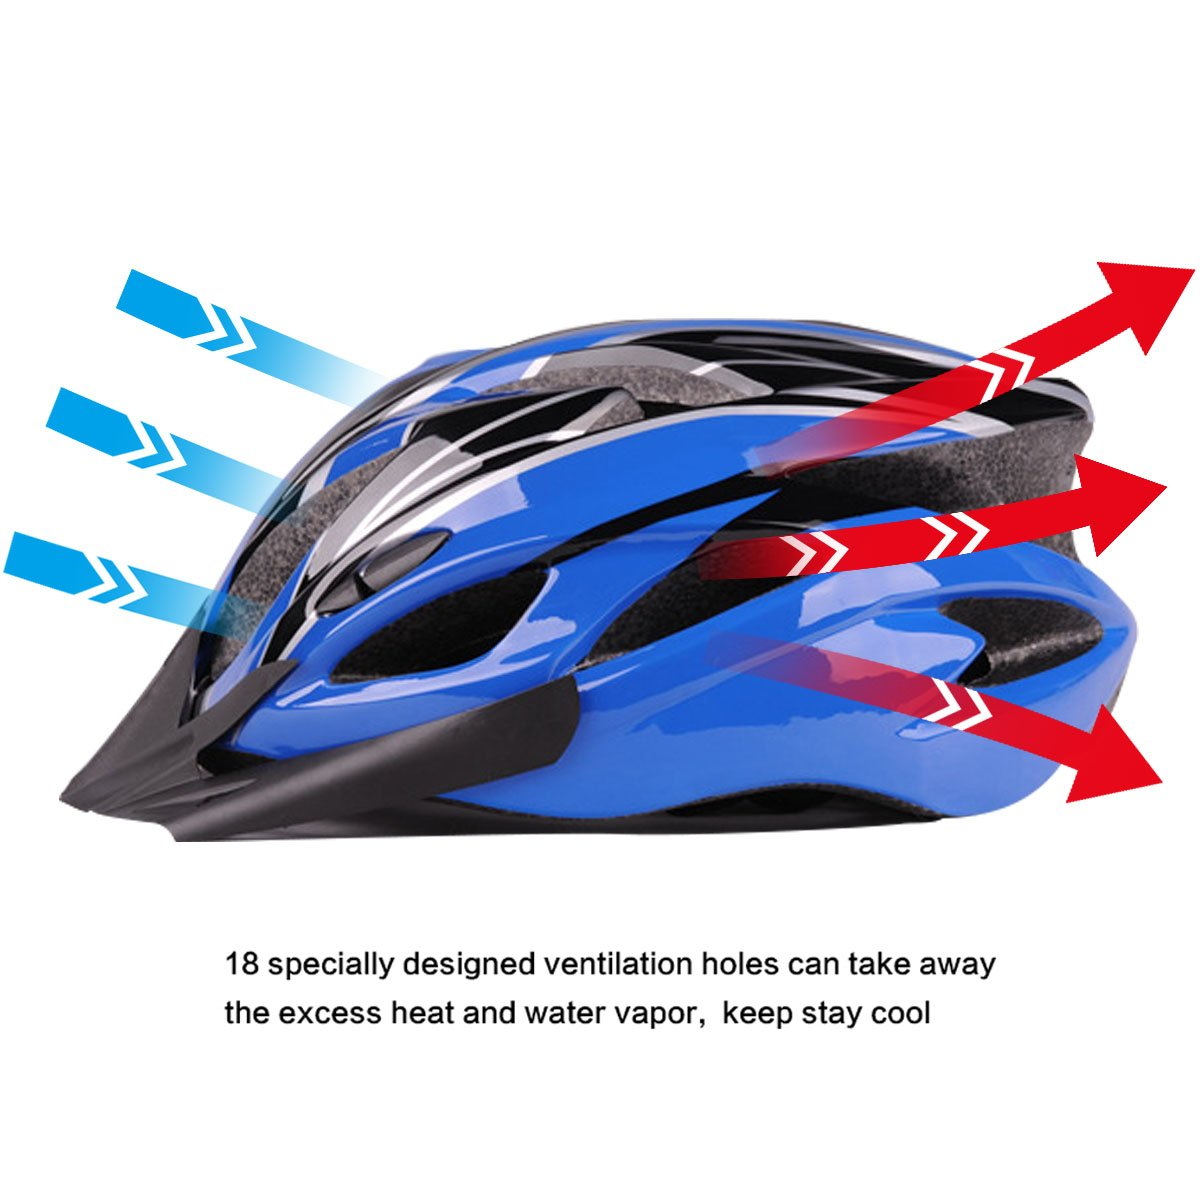 Para Six Mit Insektennetz Bicicleta De Foxes Adultos Casco Ligero 0On8kwPXN